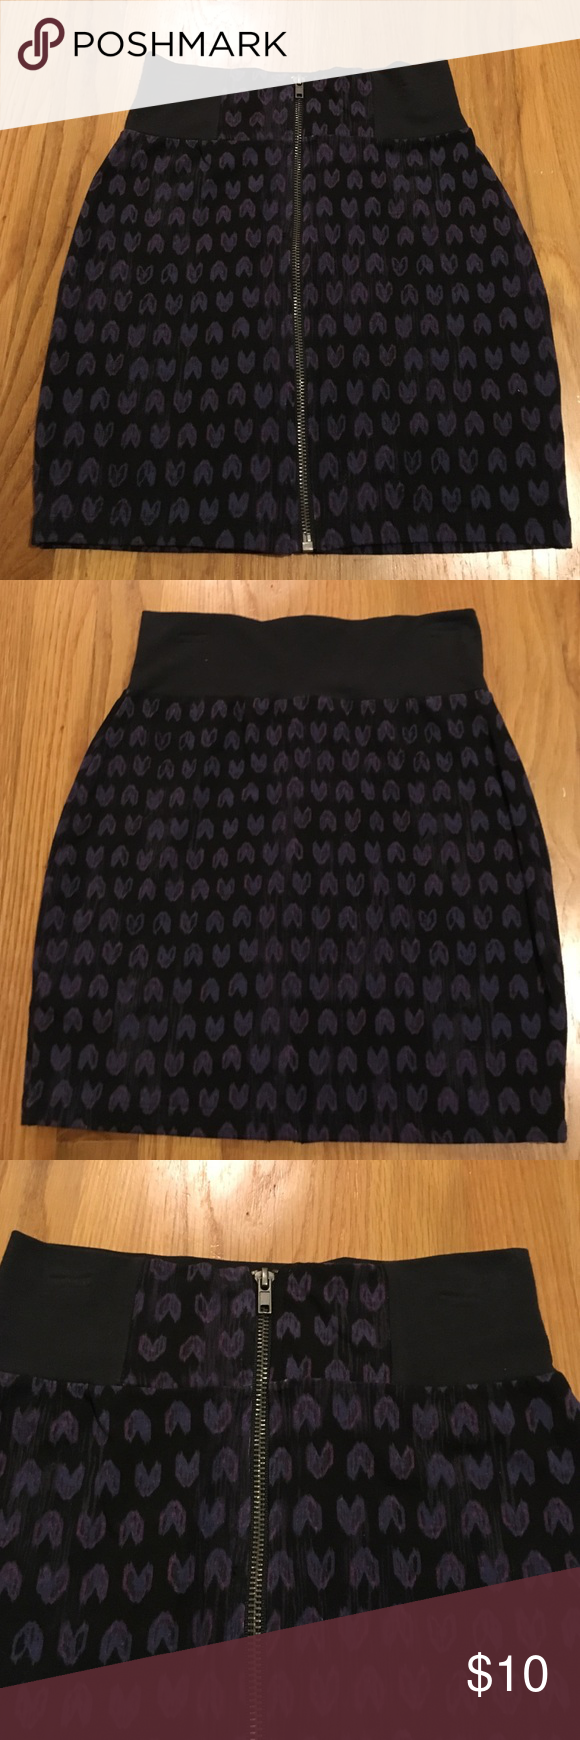 Material Girl black print zipped mini skirt Material Girl black print zipped mini skirt. Size small.95% cotton 5% spandex. Brand new with tags. Material Girl Skirts Mini